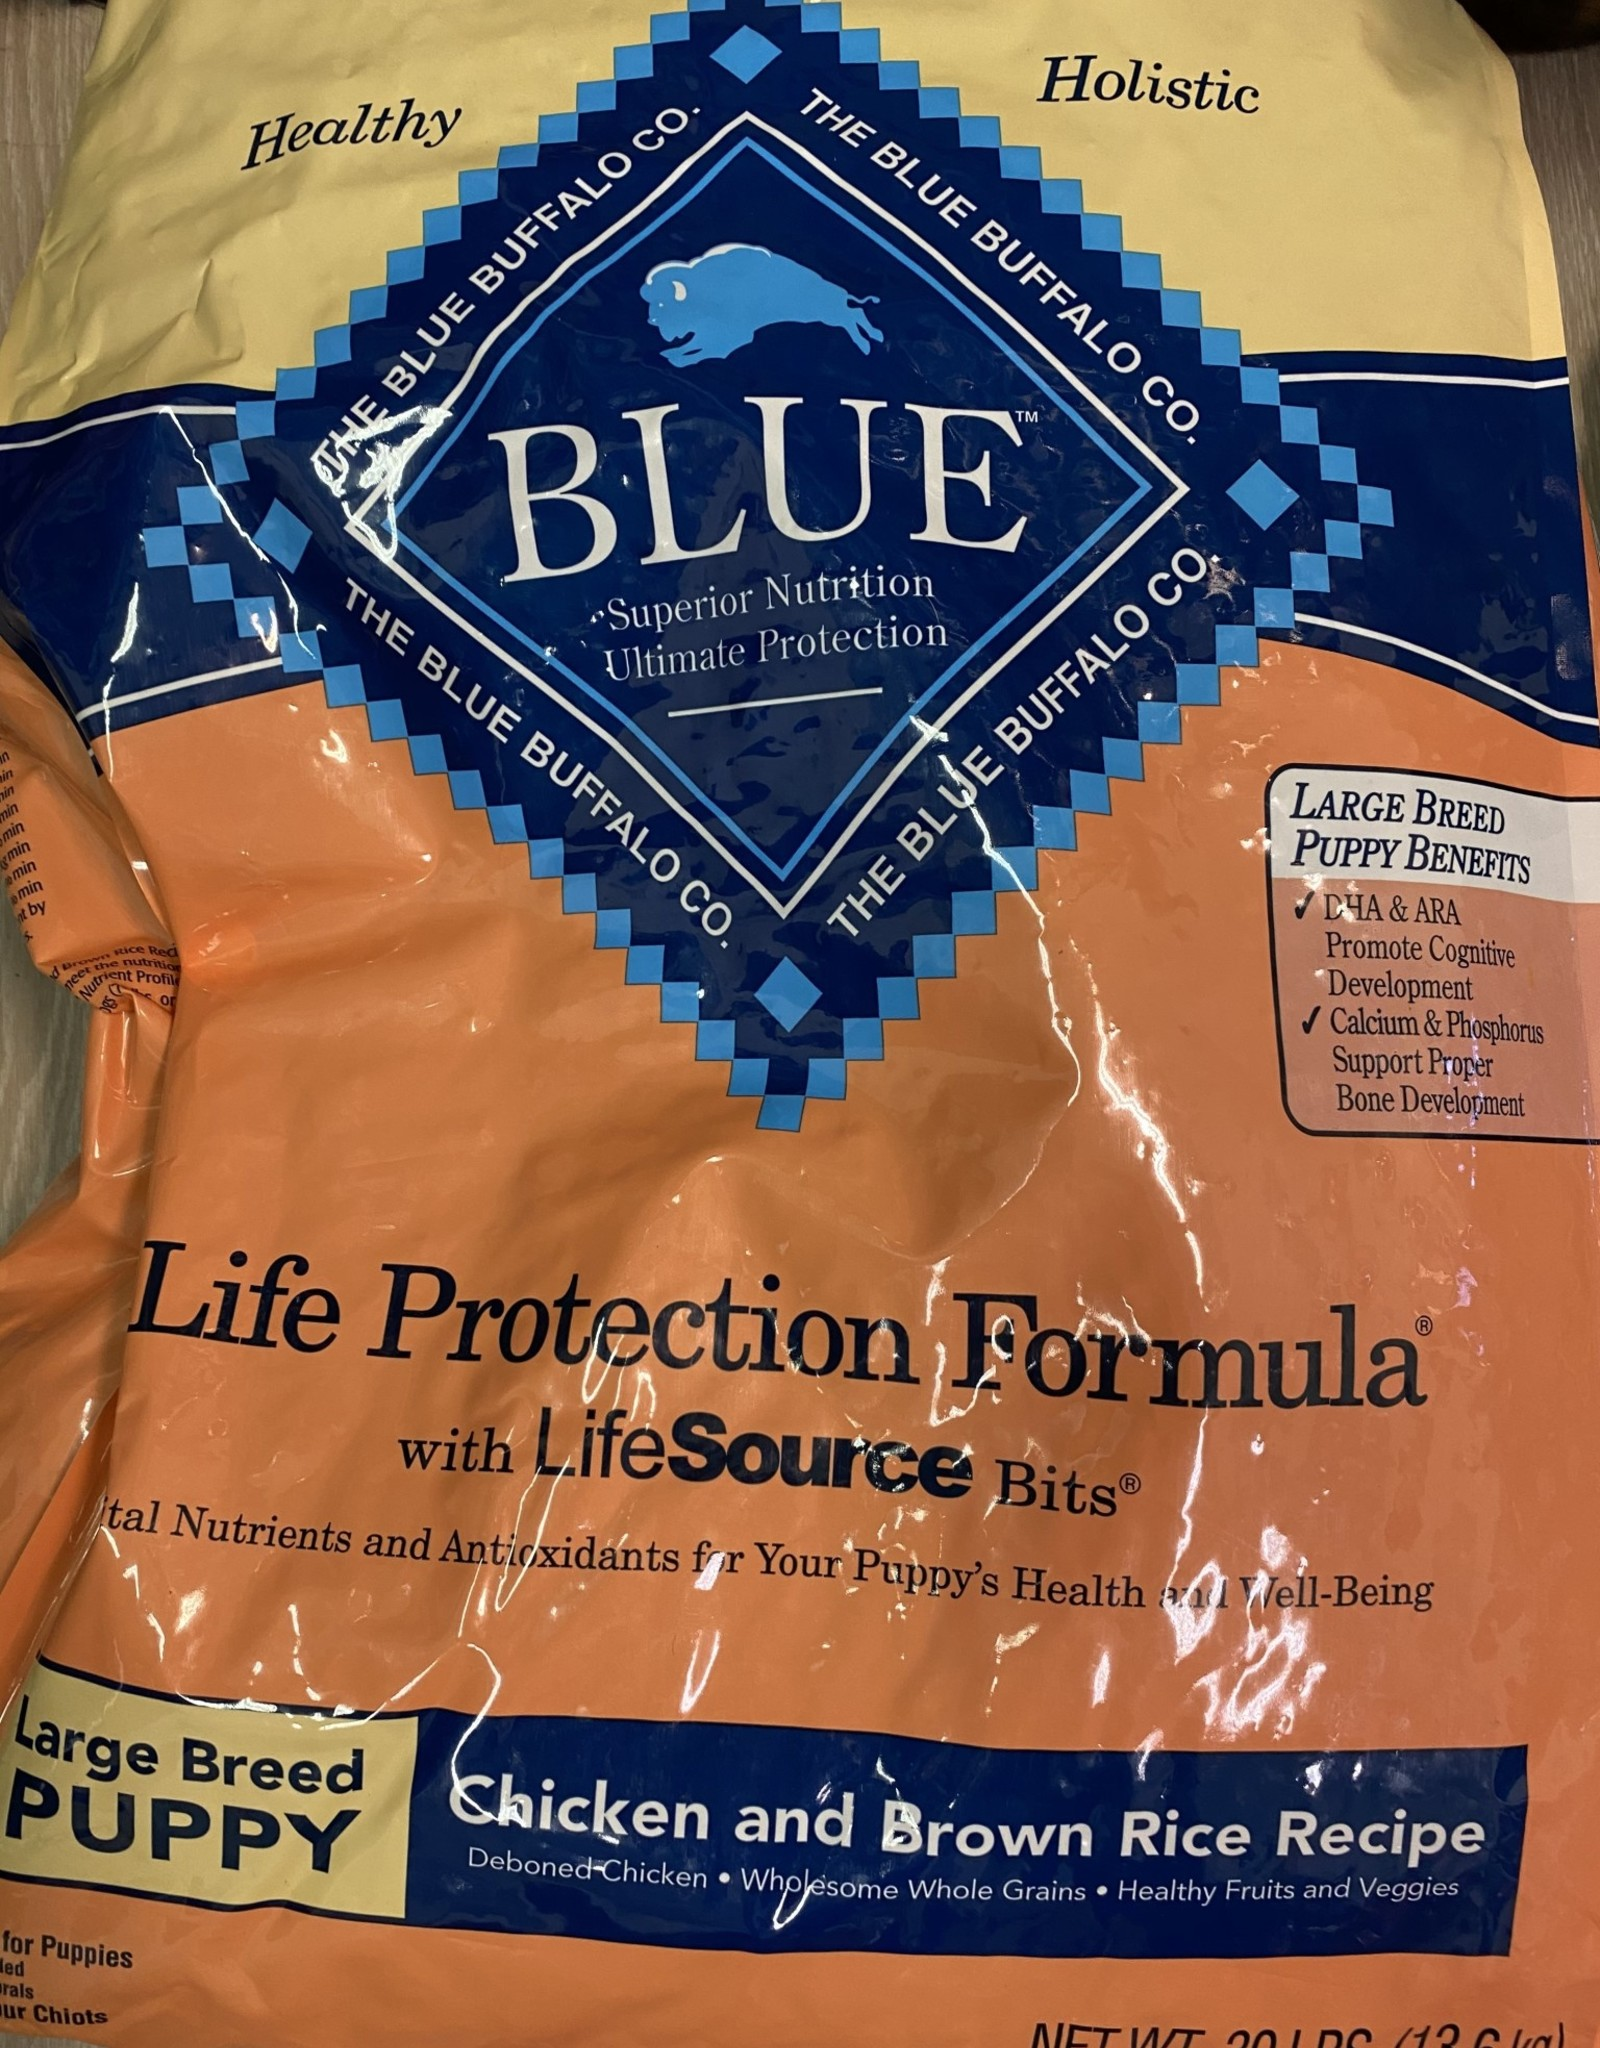 Blue Buffalo Life Protection Dog Food 30 lbs Puppy Large Breed Chicken & Brown Rice